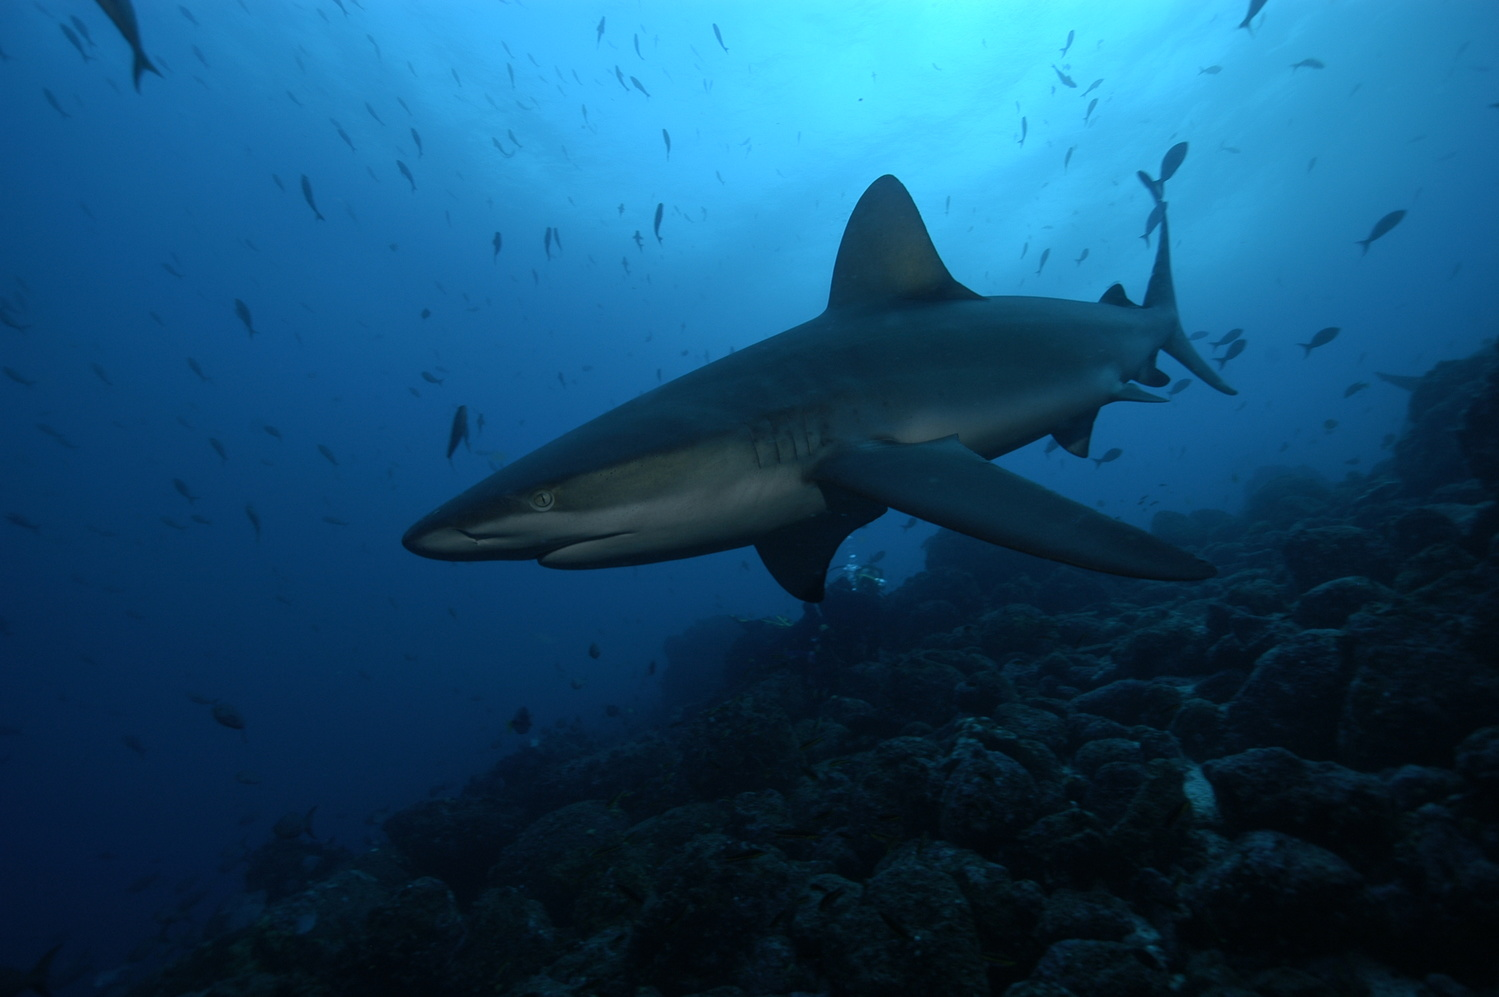 GALAPAGOS REEF SHARK by stephen duffield